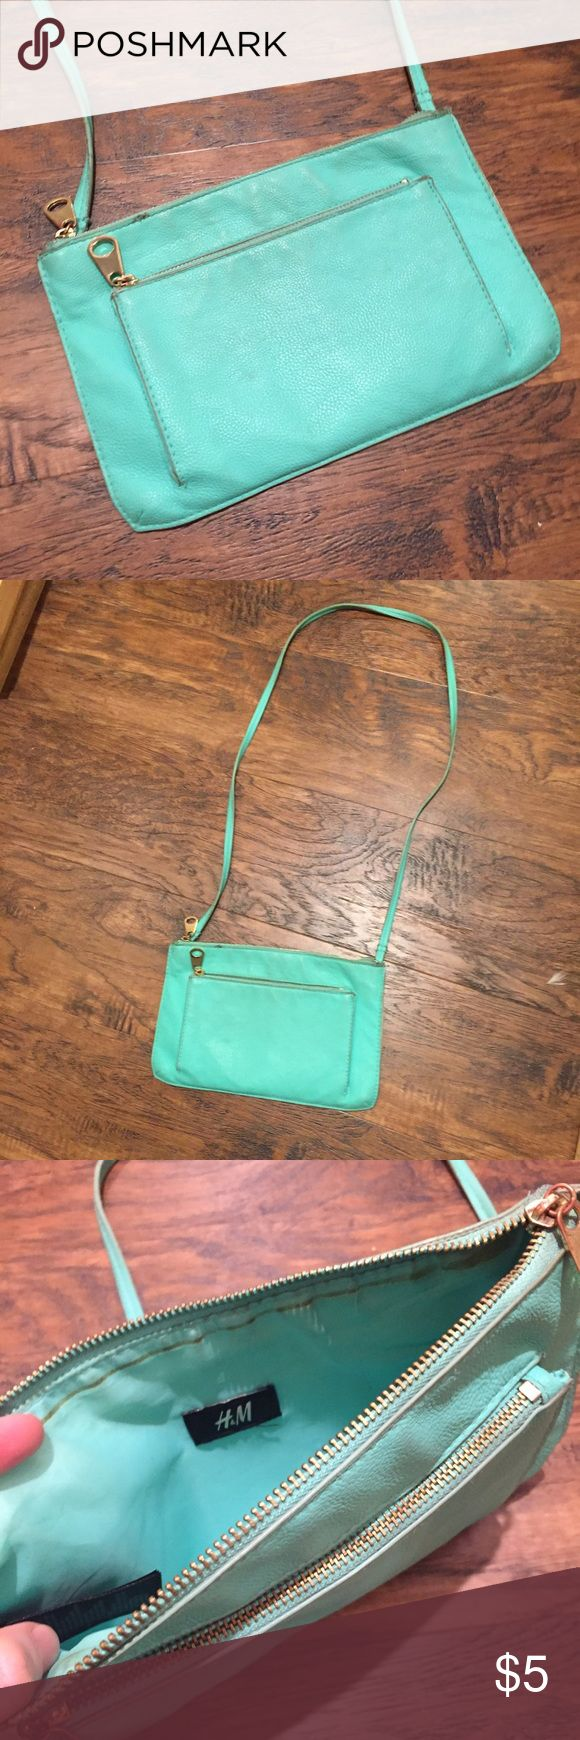 Mint green crossbody bag. H&M purse vegan leather Adorable mint green cross body purse from H&M. Gold hardware. Small pouch on the side and larger on the tip. Zippers work great! H&M brand, made with vegan leather like material. Used with some marks and wear but lots of life left :) H&M Bags Crossbody Bags